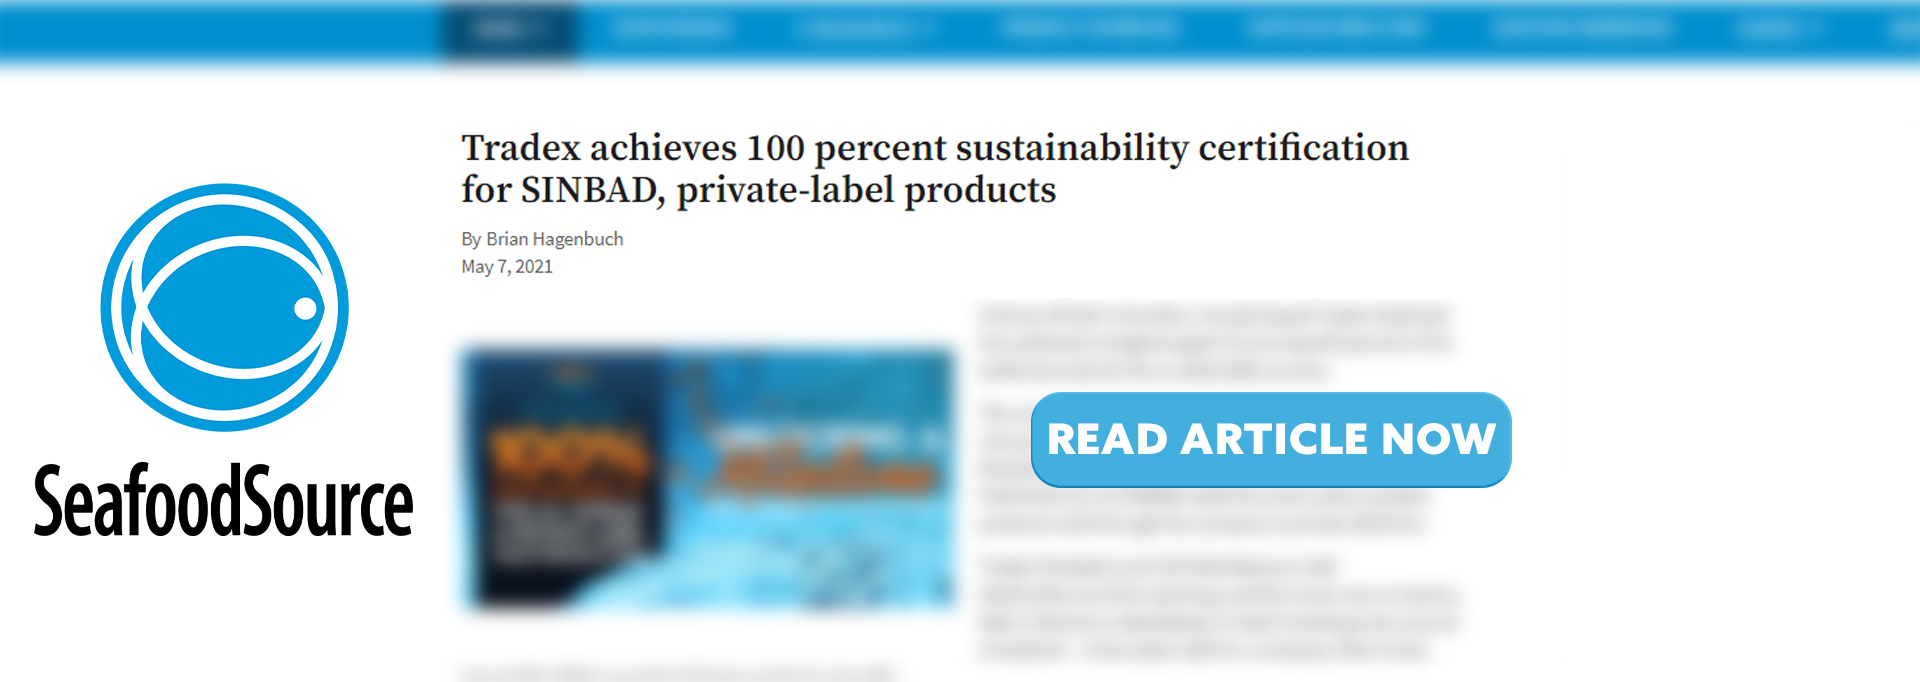 2020 Sustainability Seafood Source